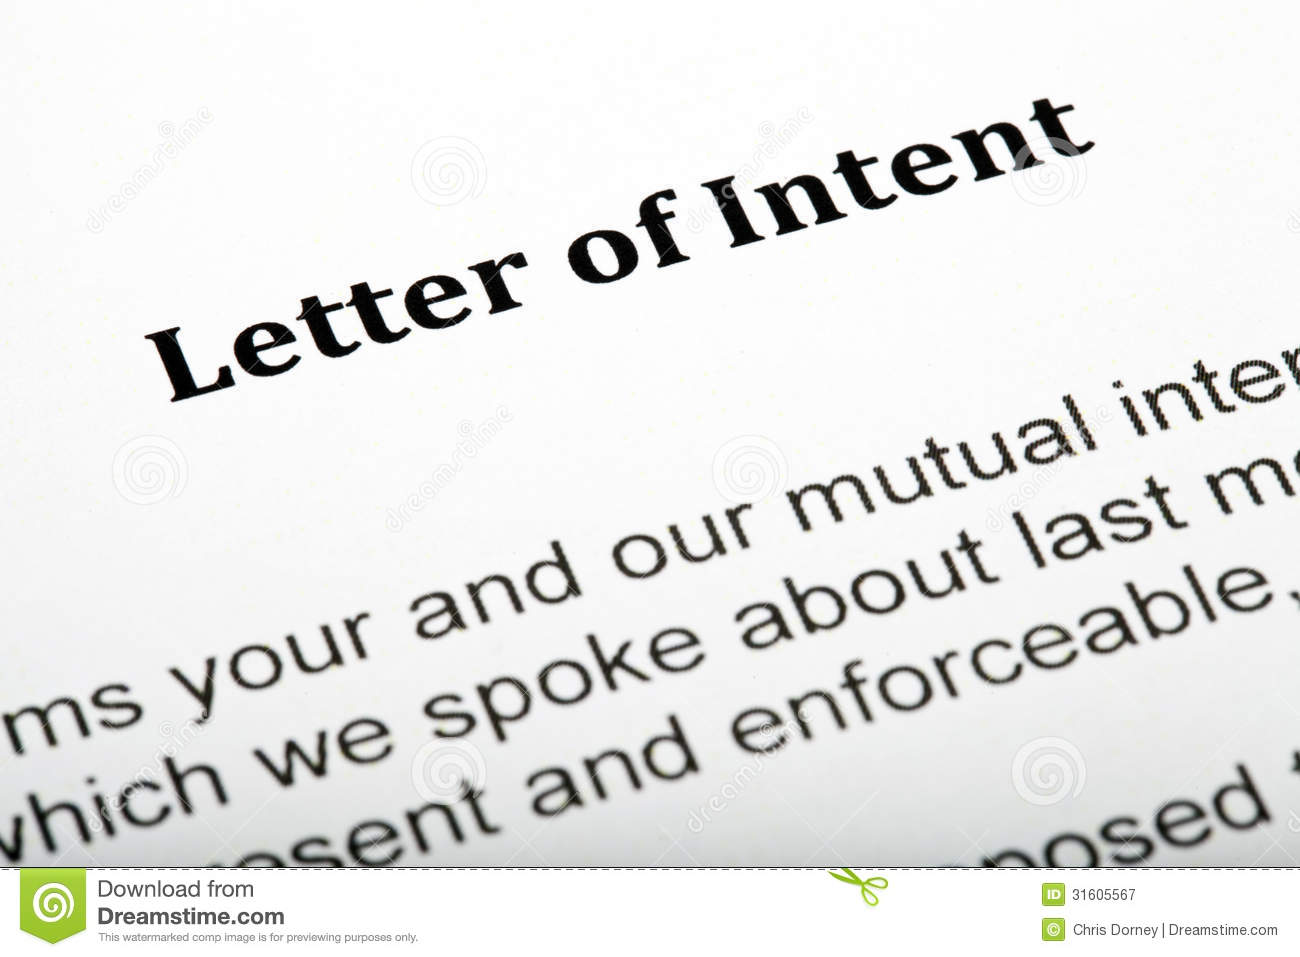 Dreamstime.com  Free Letter Of Intent